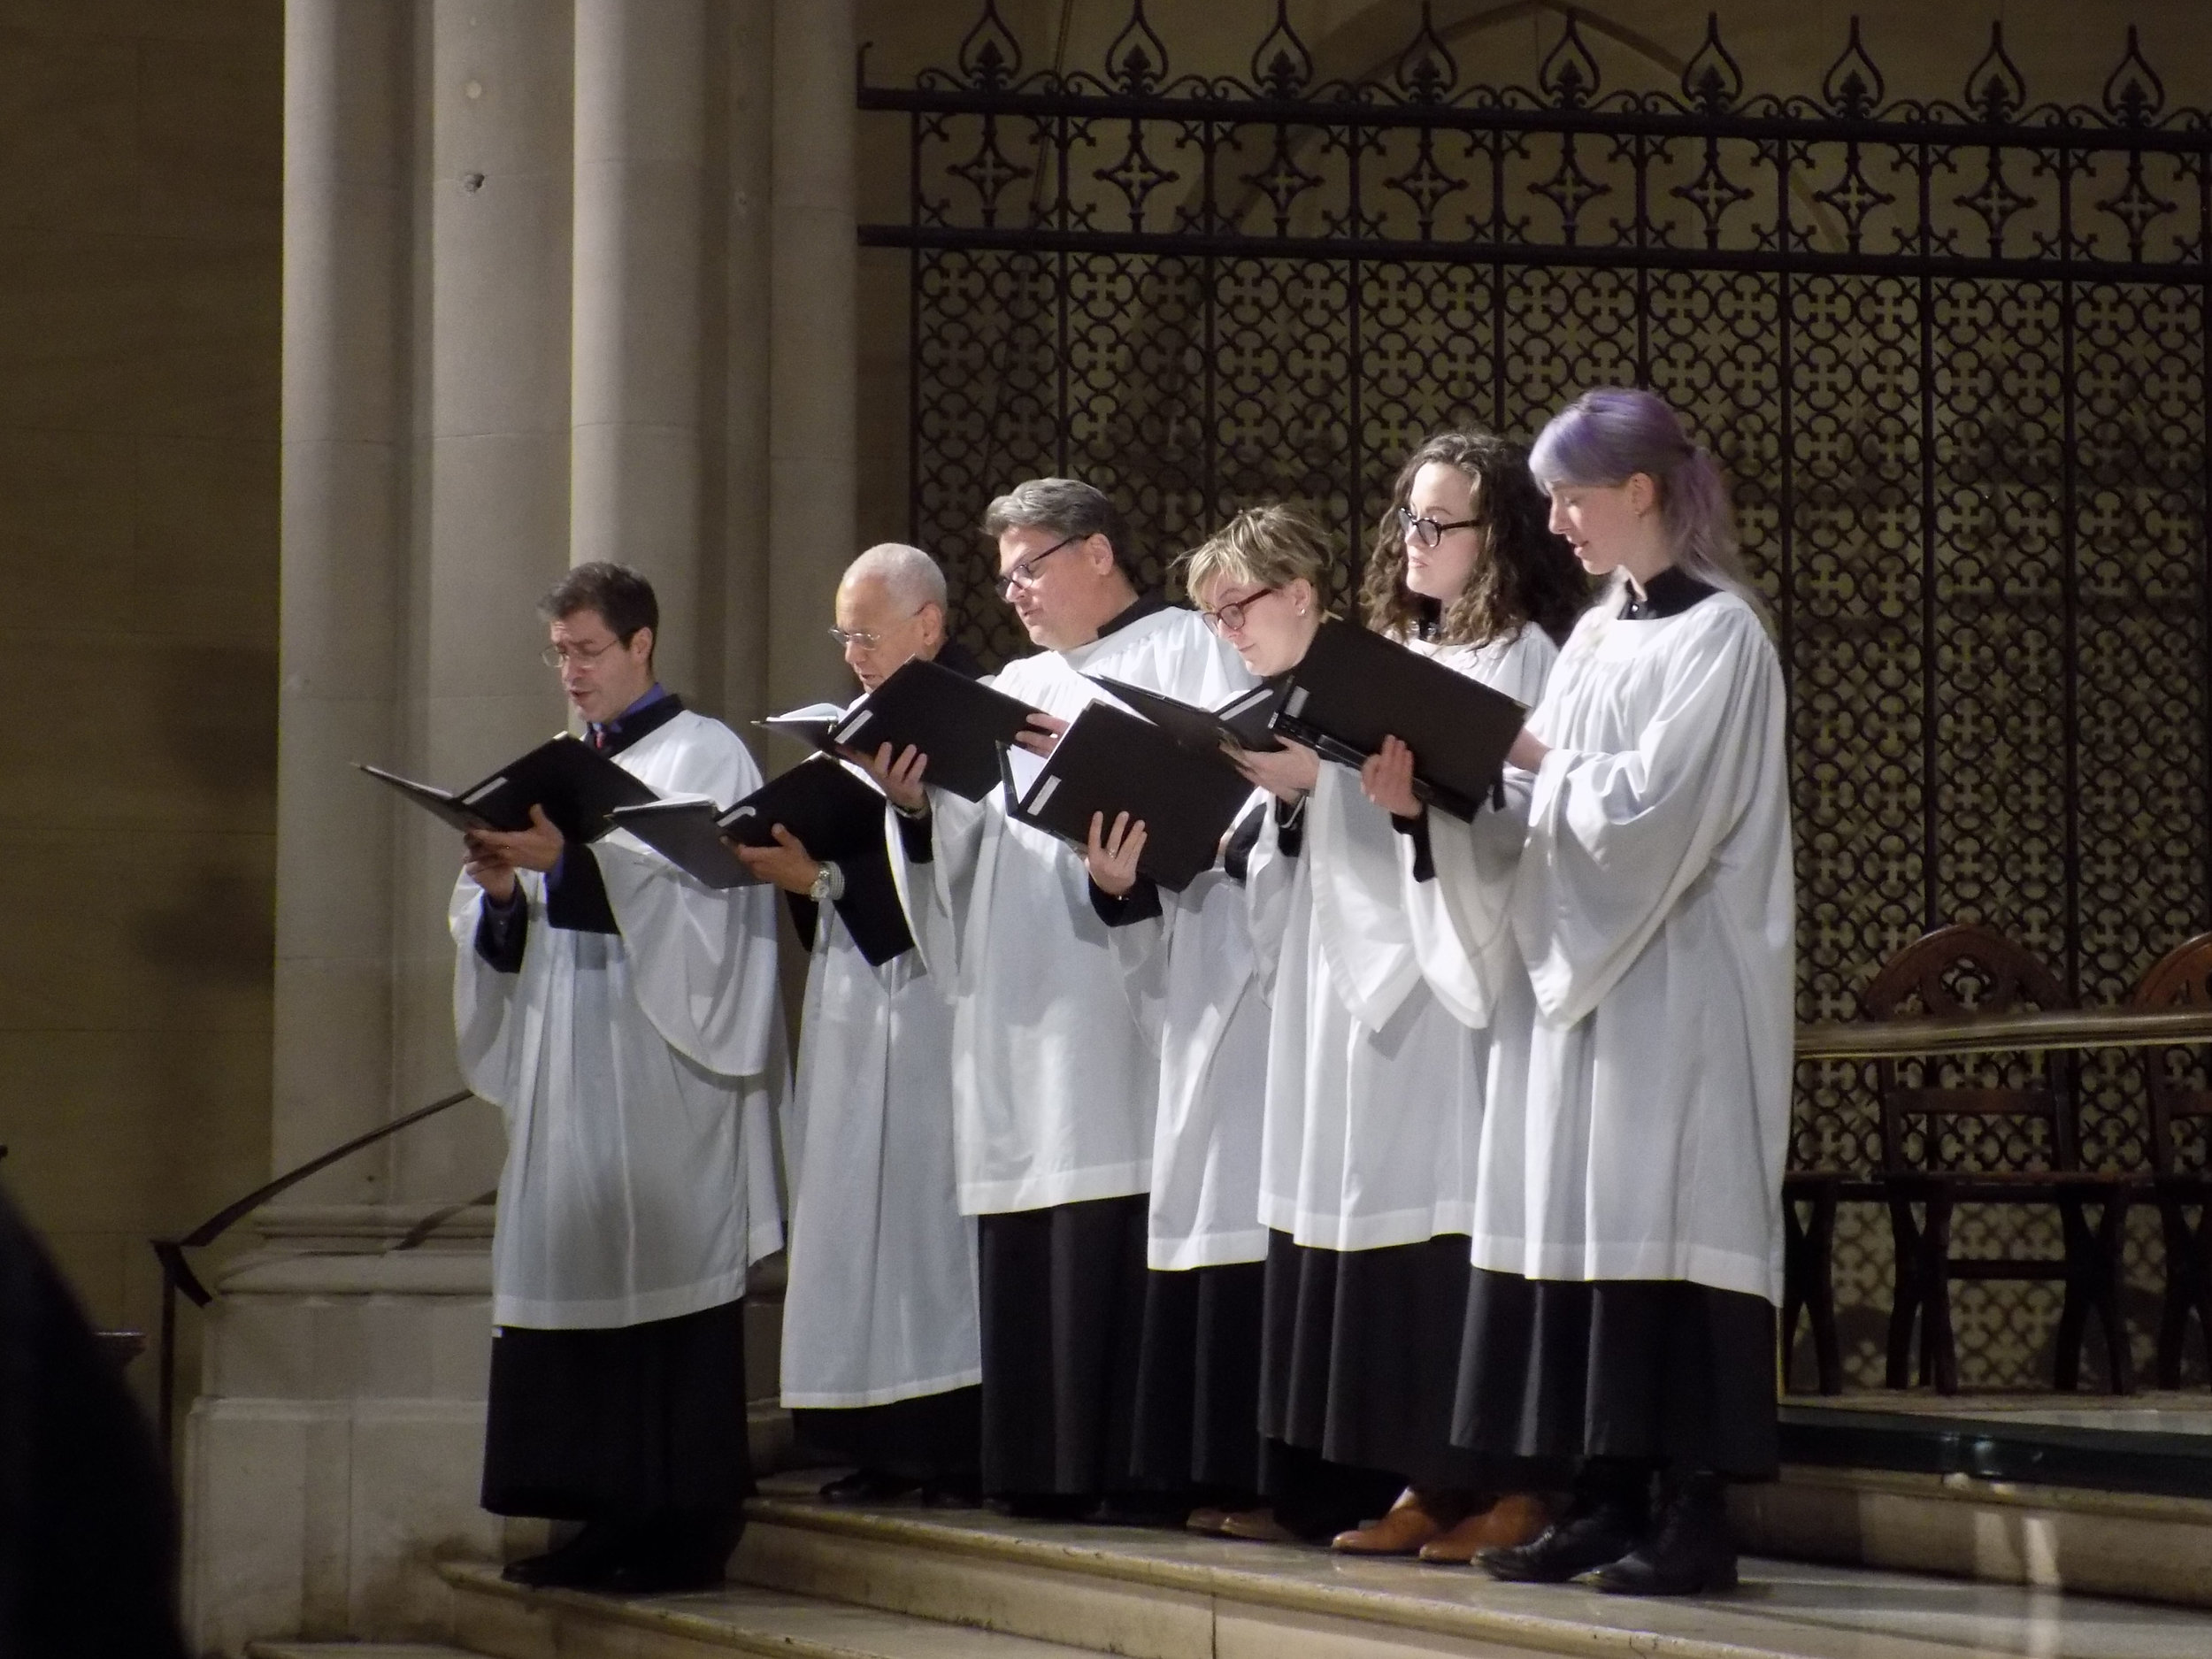 Members of the Parish Choir sang the canticles and a motet at Solemn Evensong on the Eve of the Patronal Feast